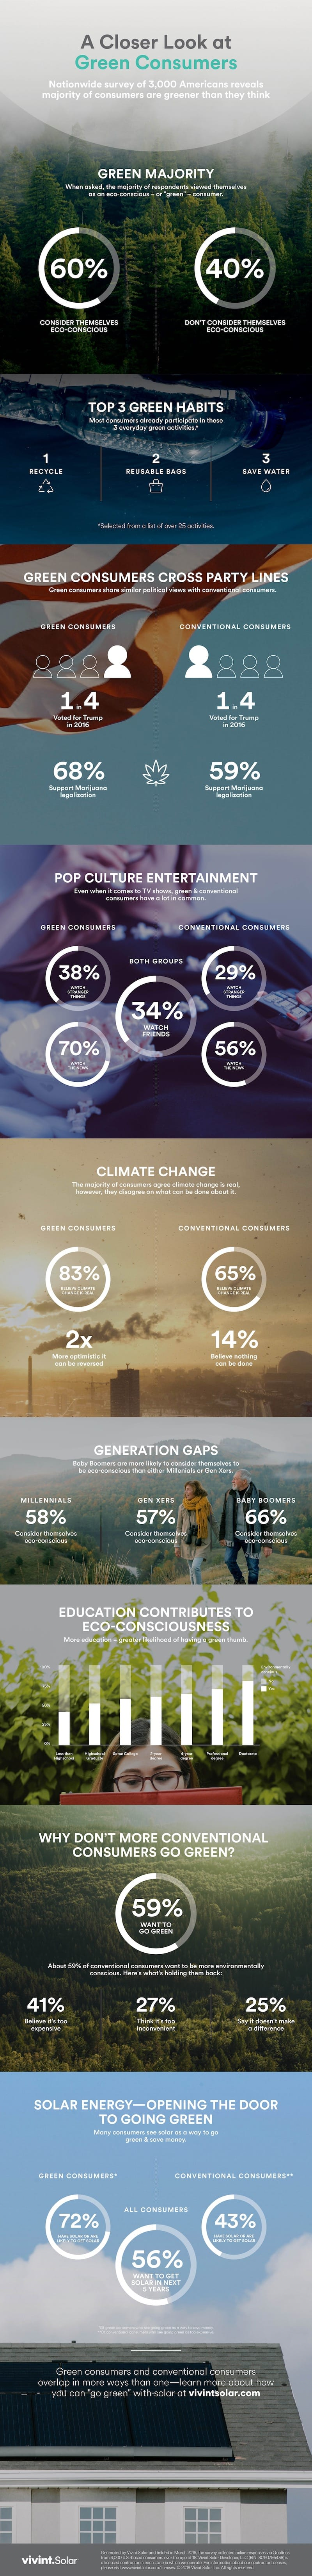 environmentally conscious green consumer infographic